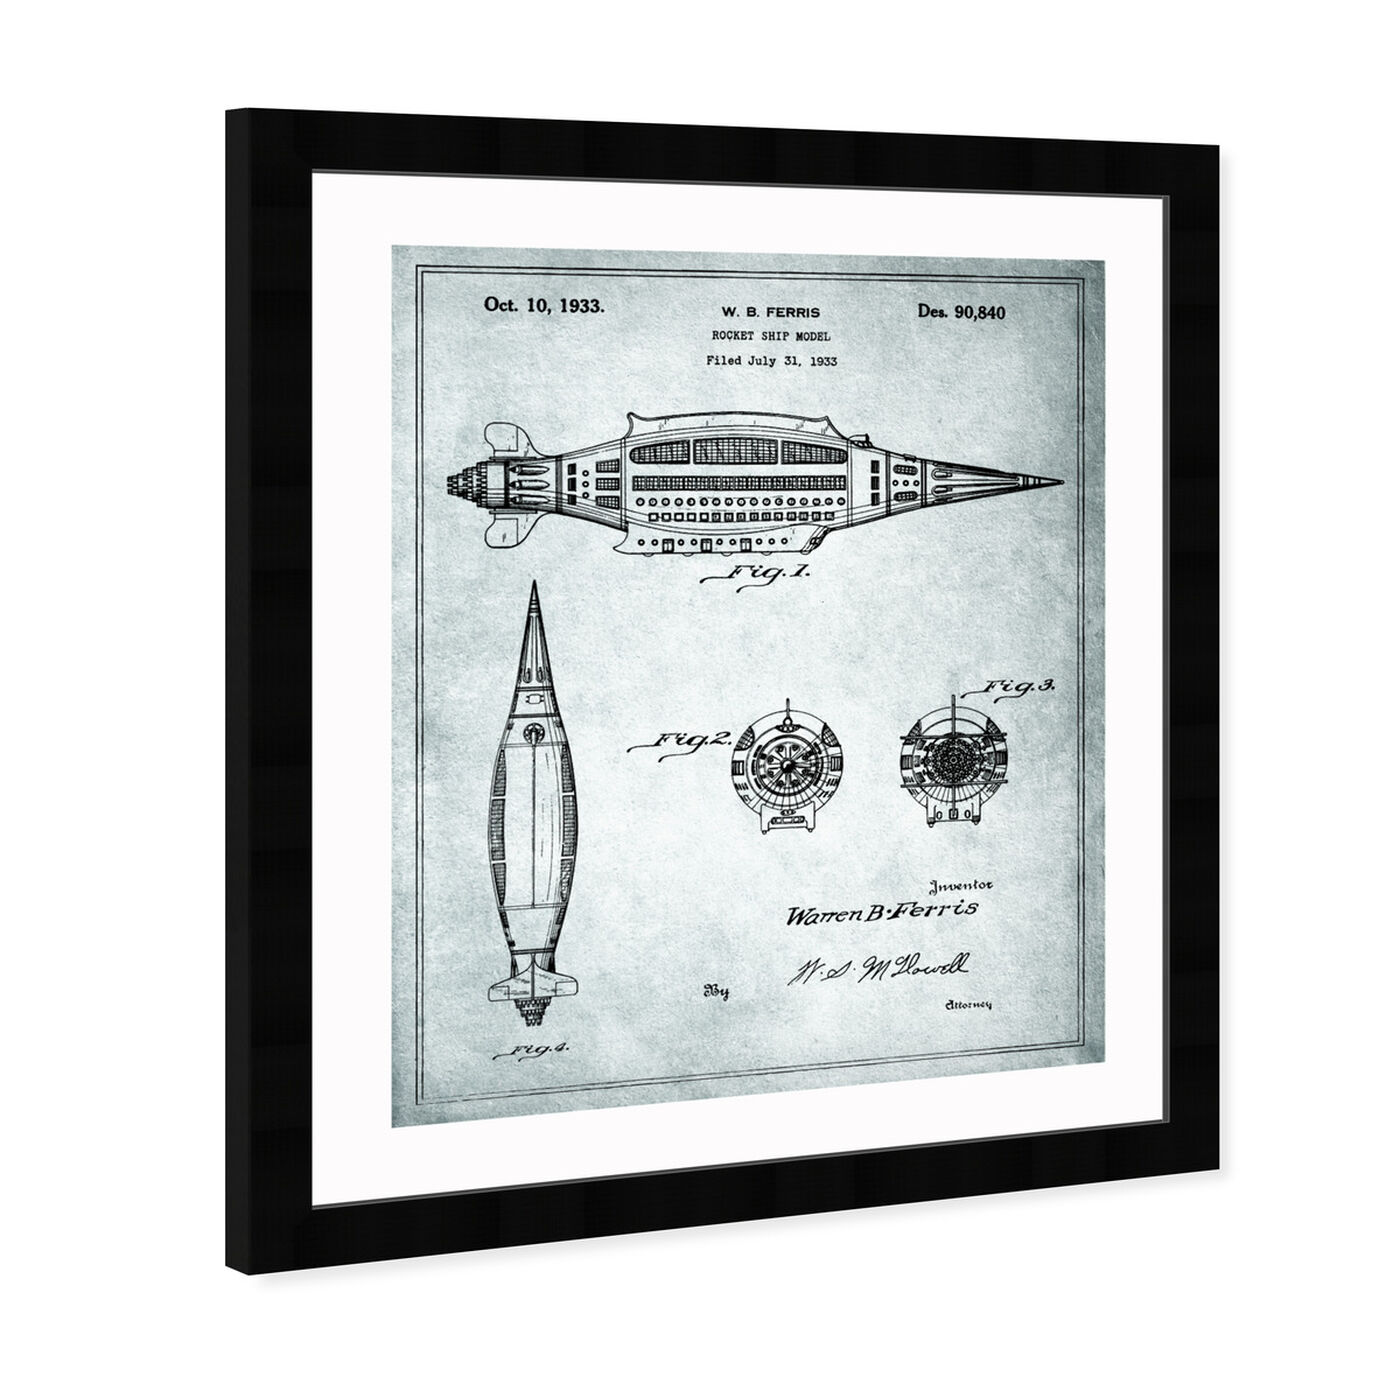 Angled view of Design for a Rocket Ship Model 1933 featuring transportation and air transportation art.